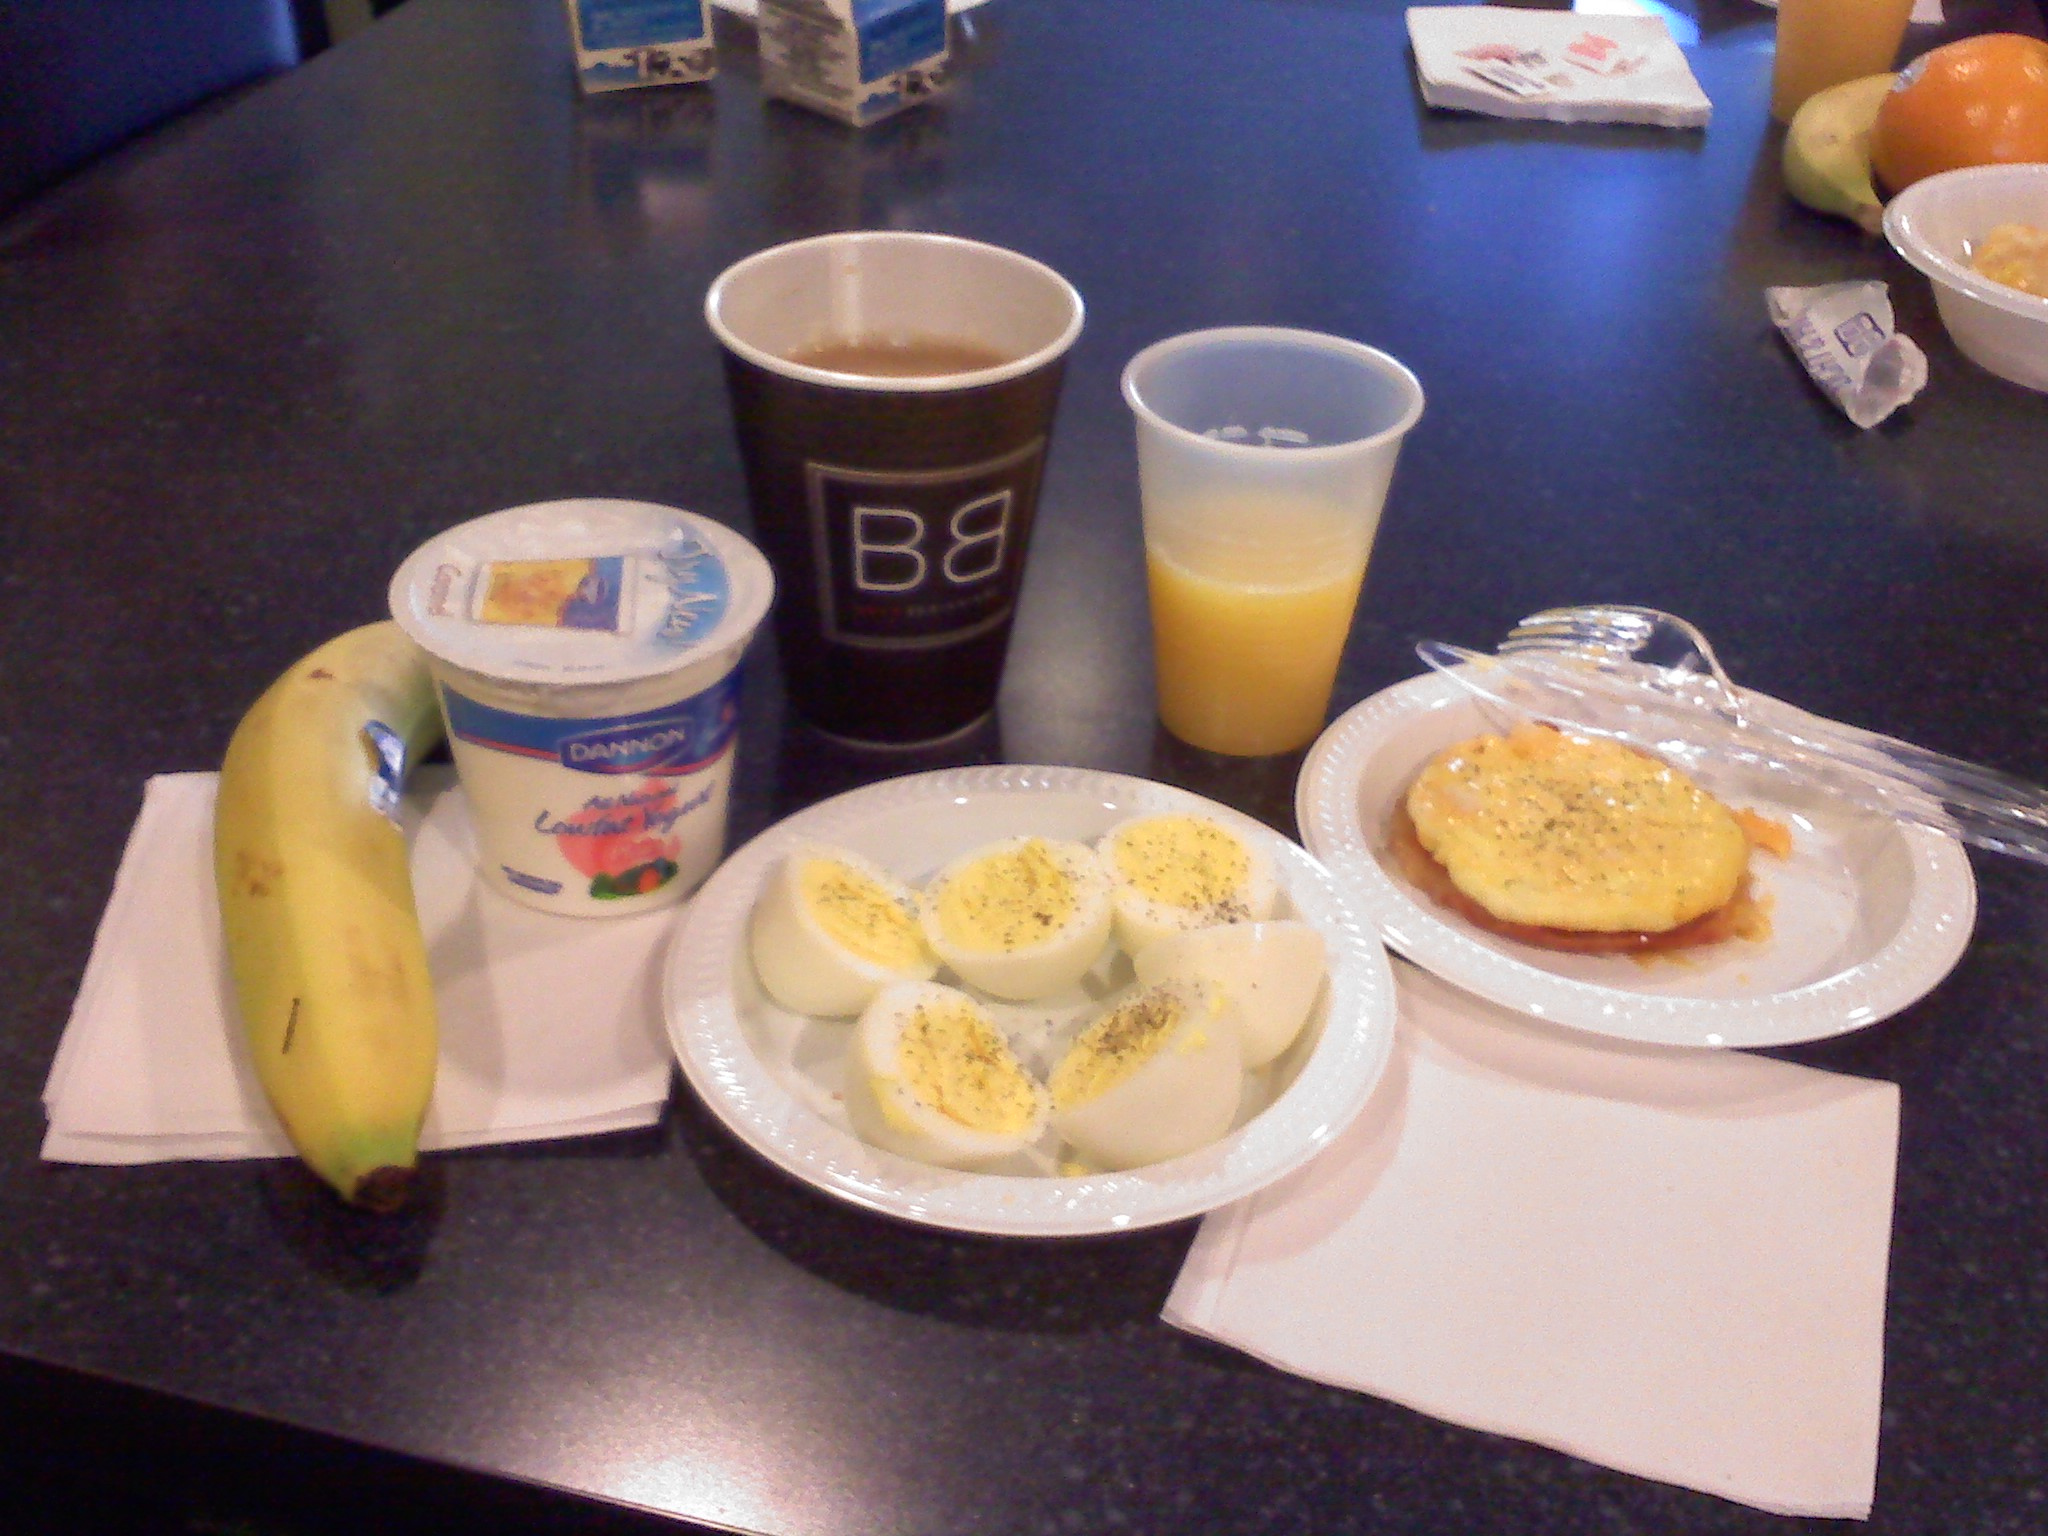 Rockford, IL, Marriott, The Fairfield Inn :: Eggs with bacon, hard boiled eggs, yogurt, banana, orange juice, coffee